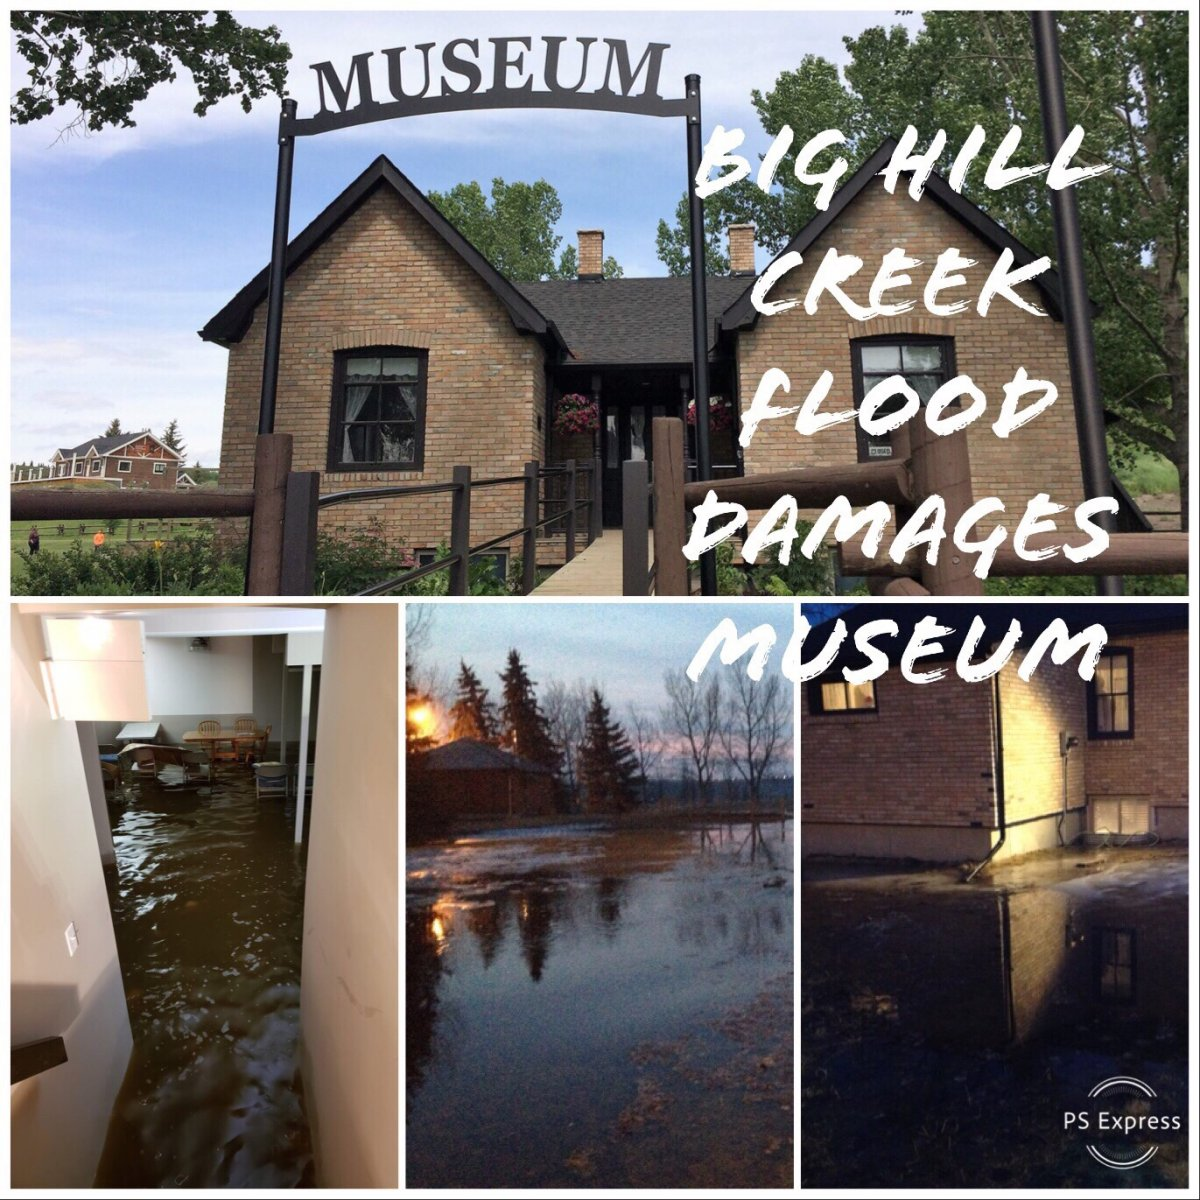 My first visit to the Museum after flood repairs.